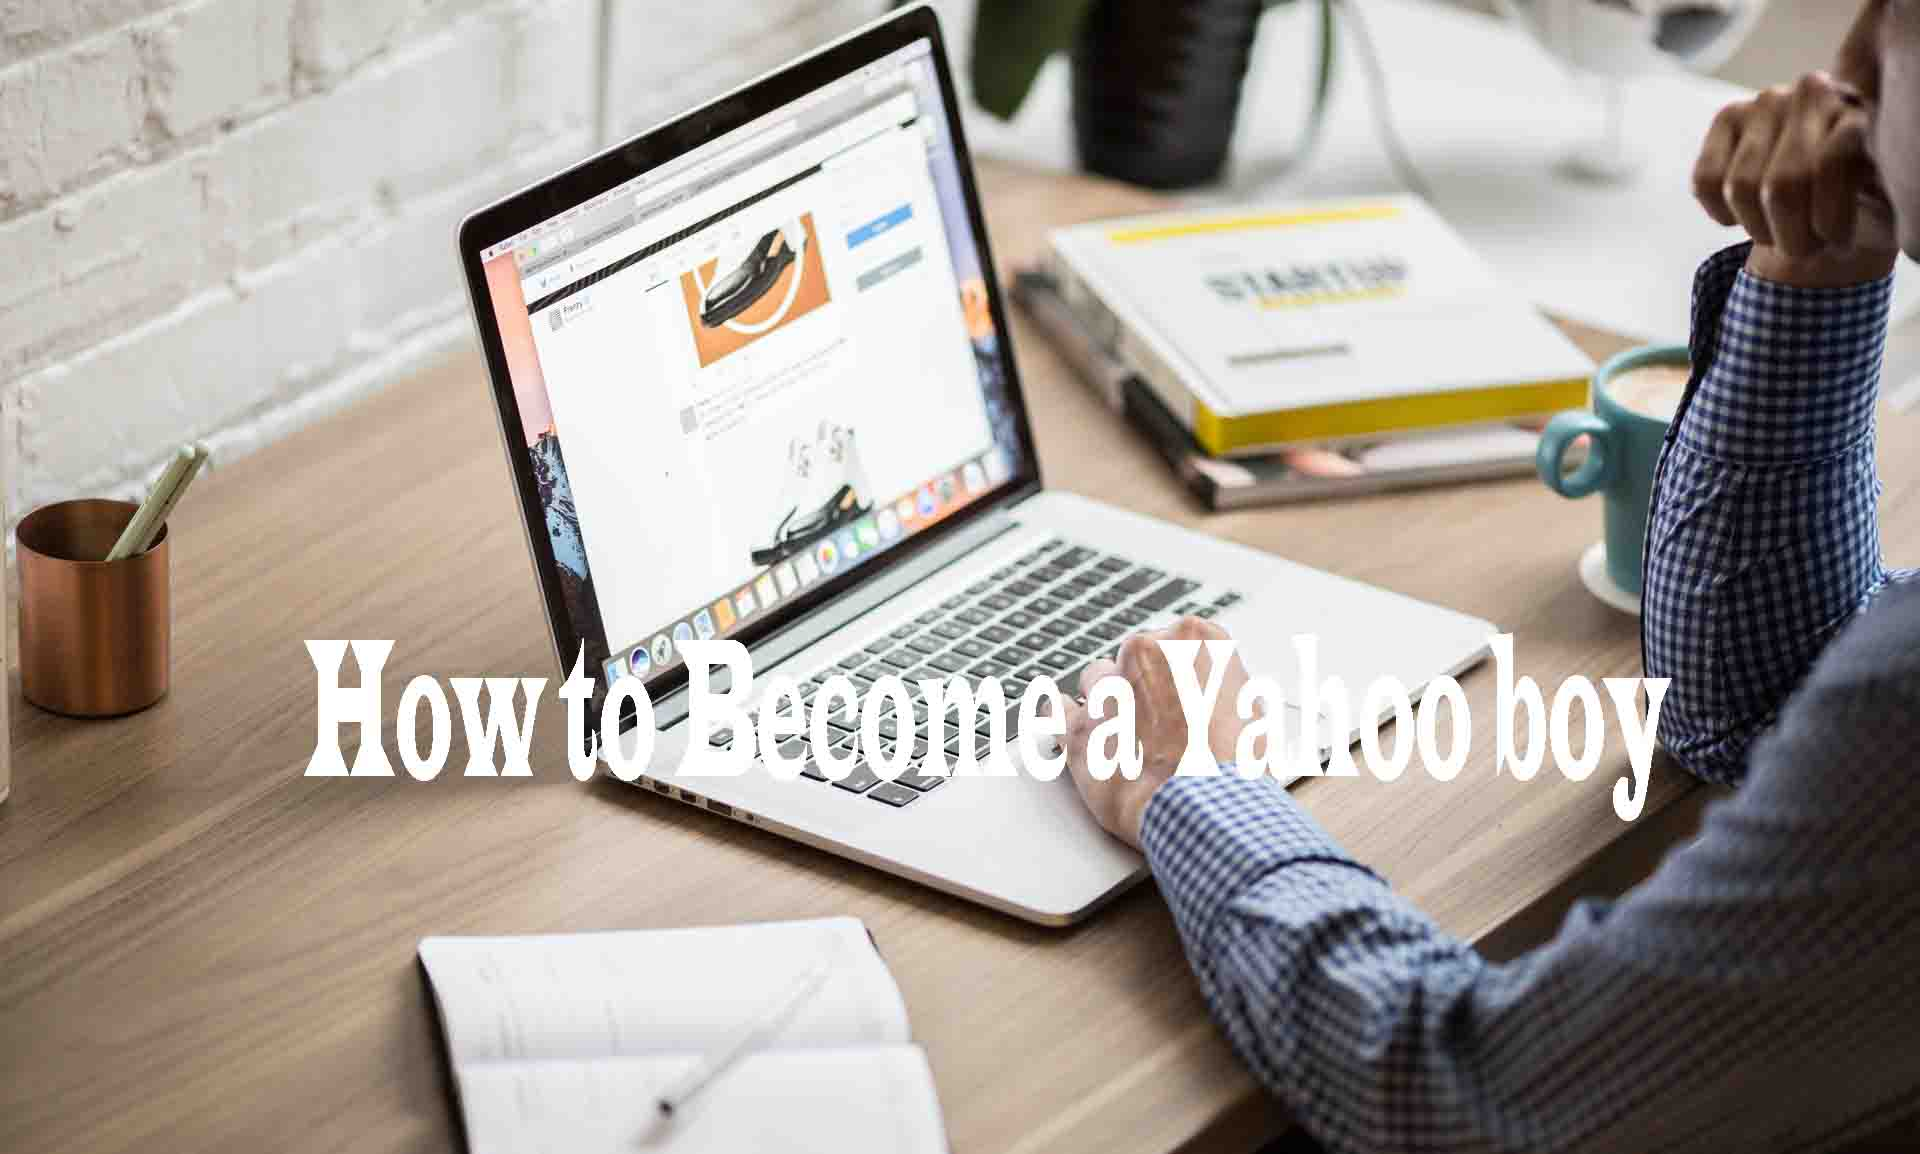 How to Become a Yahoo Boy: Yahoo Boy Formats That Work (2019)